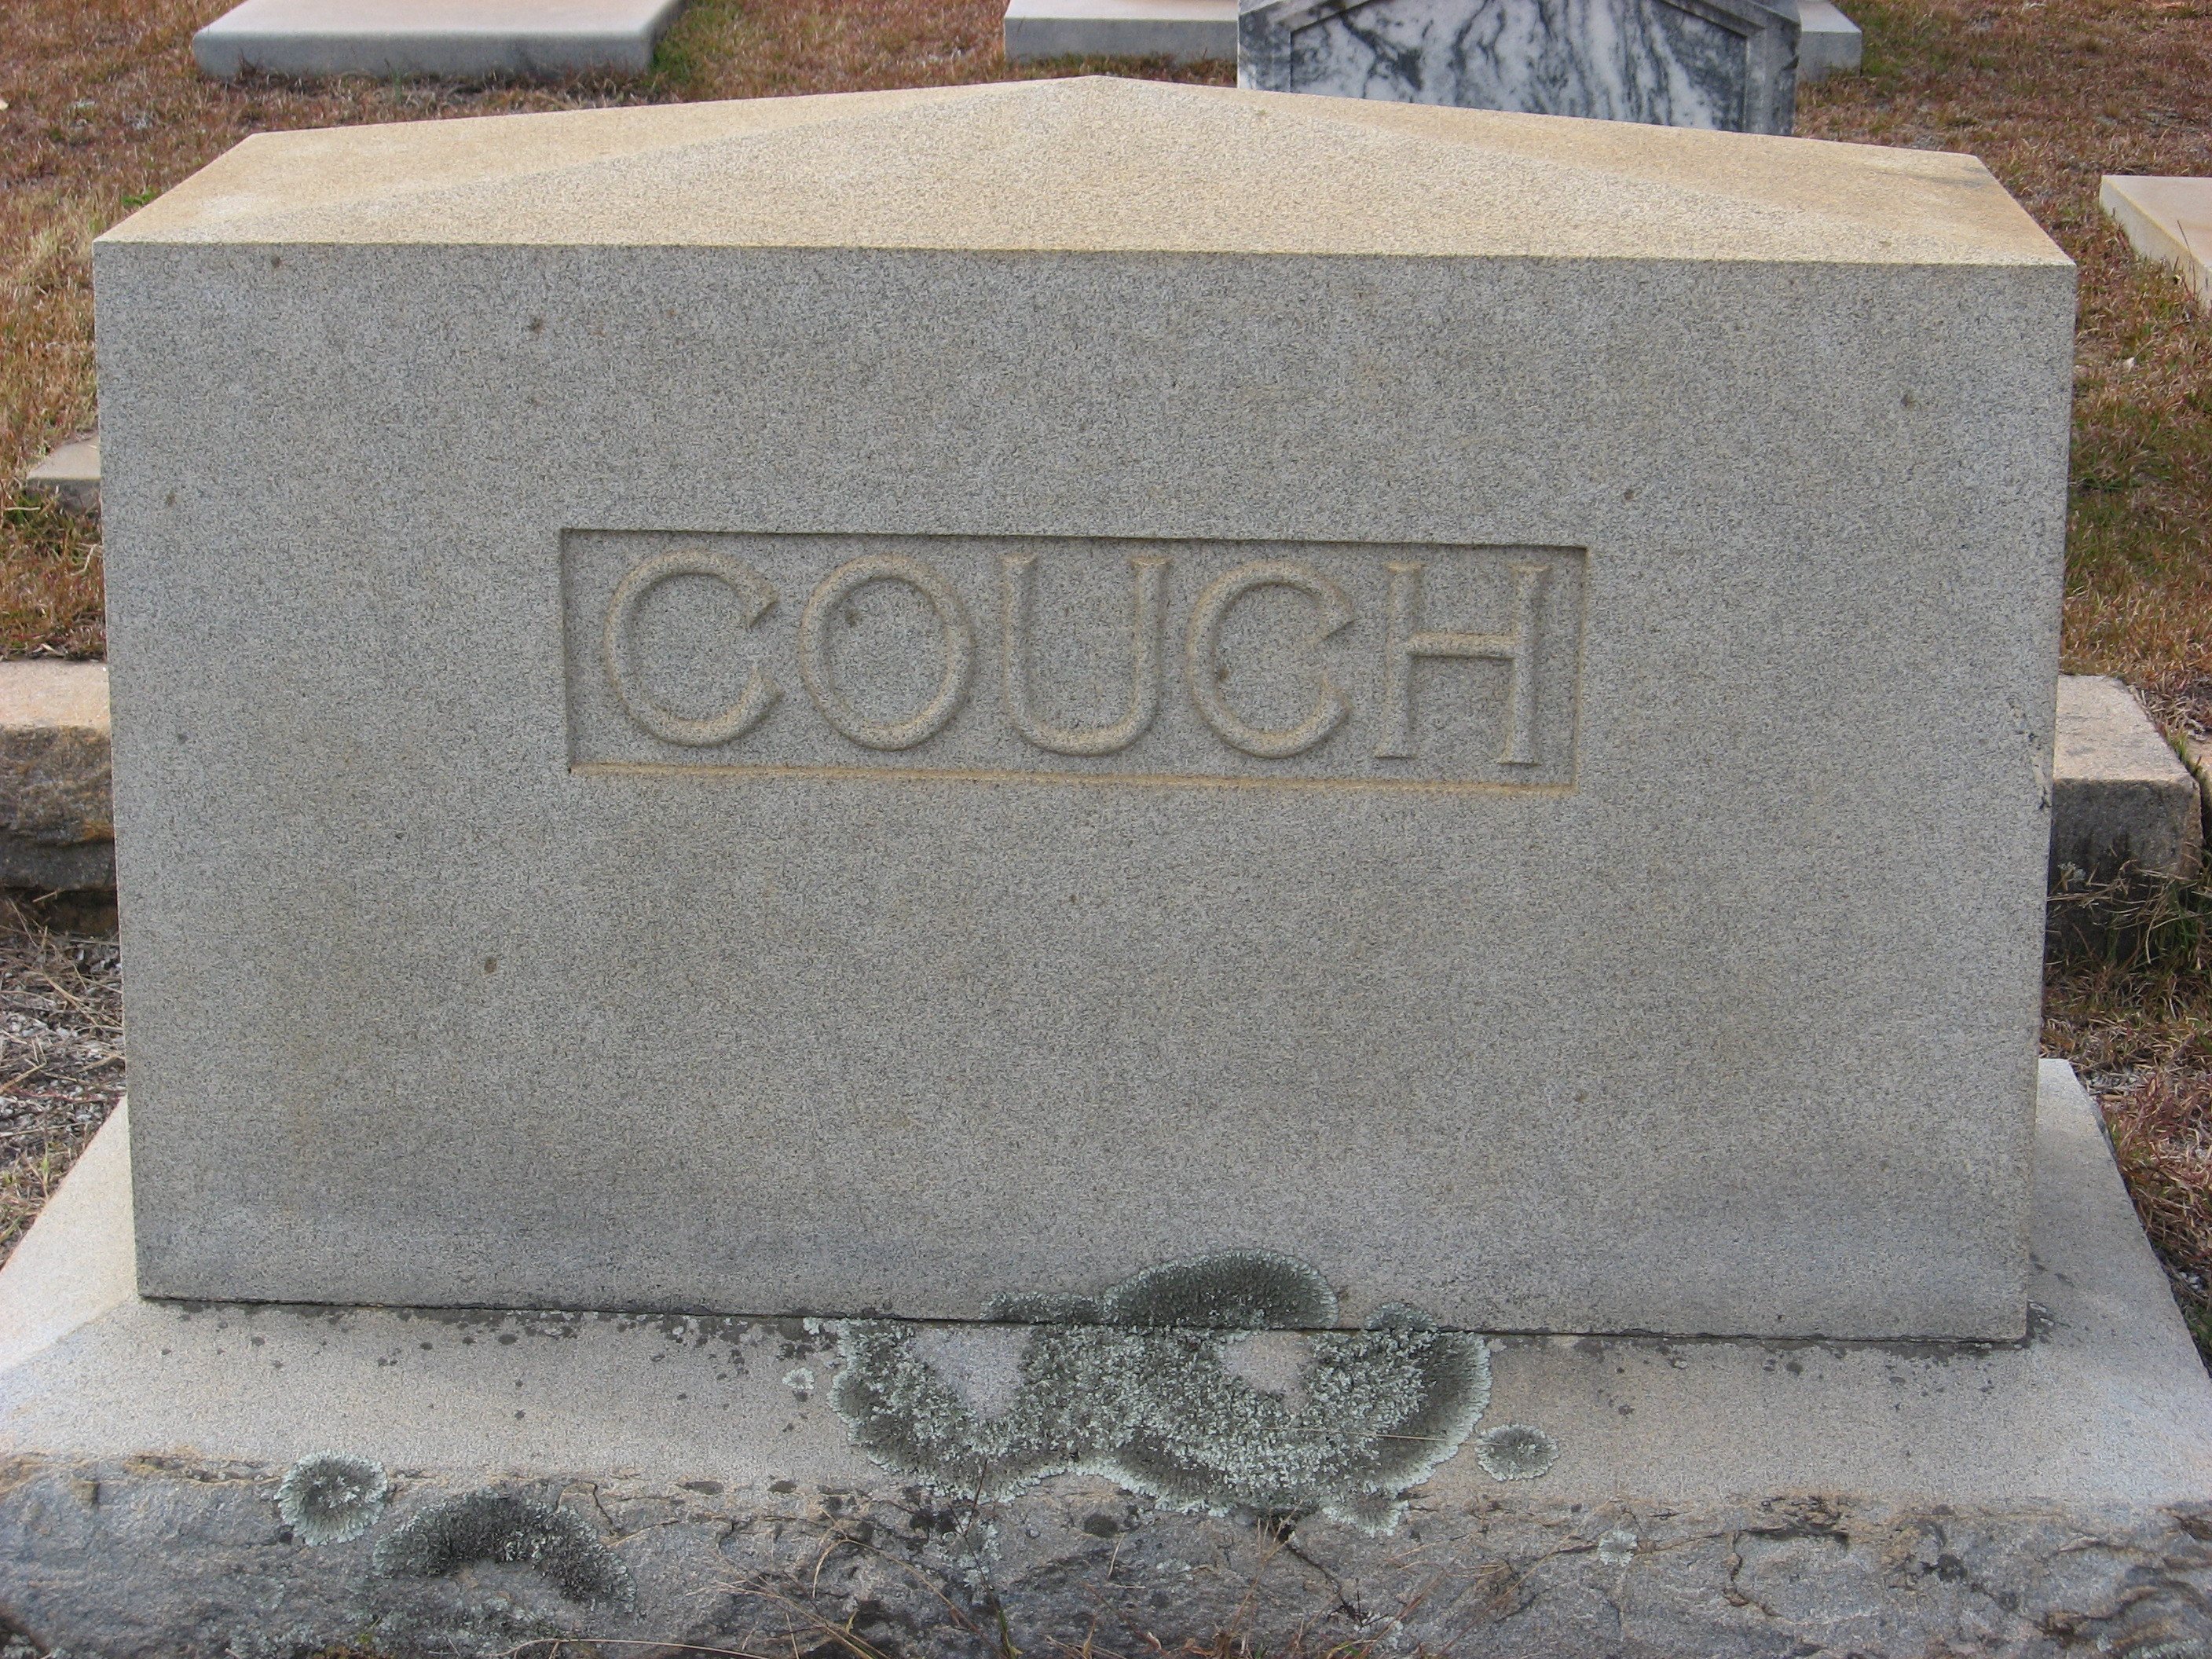 James Couch